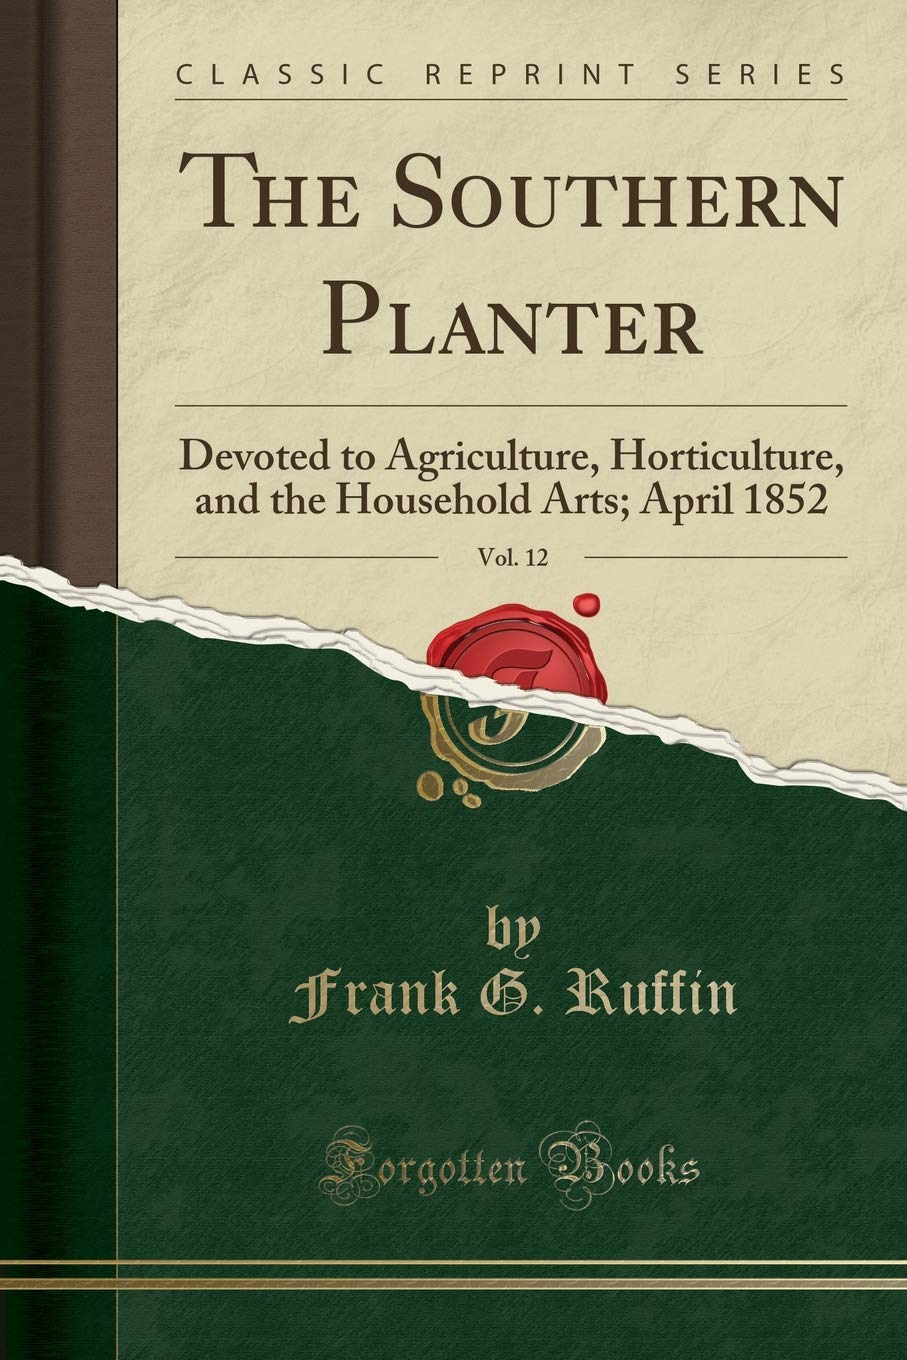 Download The Southern Planter, Vol. 12: Devoted to Agriculture, Horticulture, and the Household Arts; April 1852 (Classic Reprint) pdf